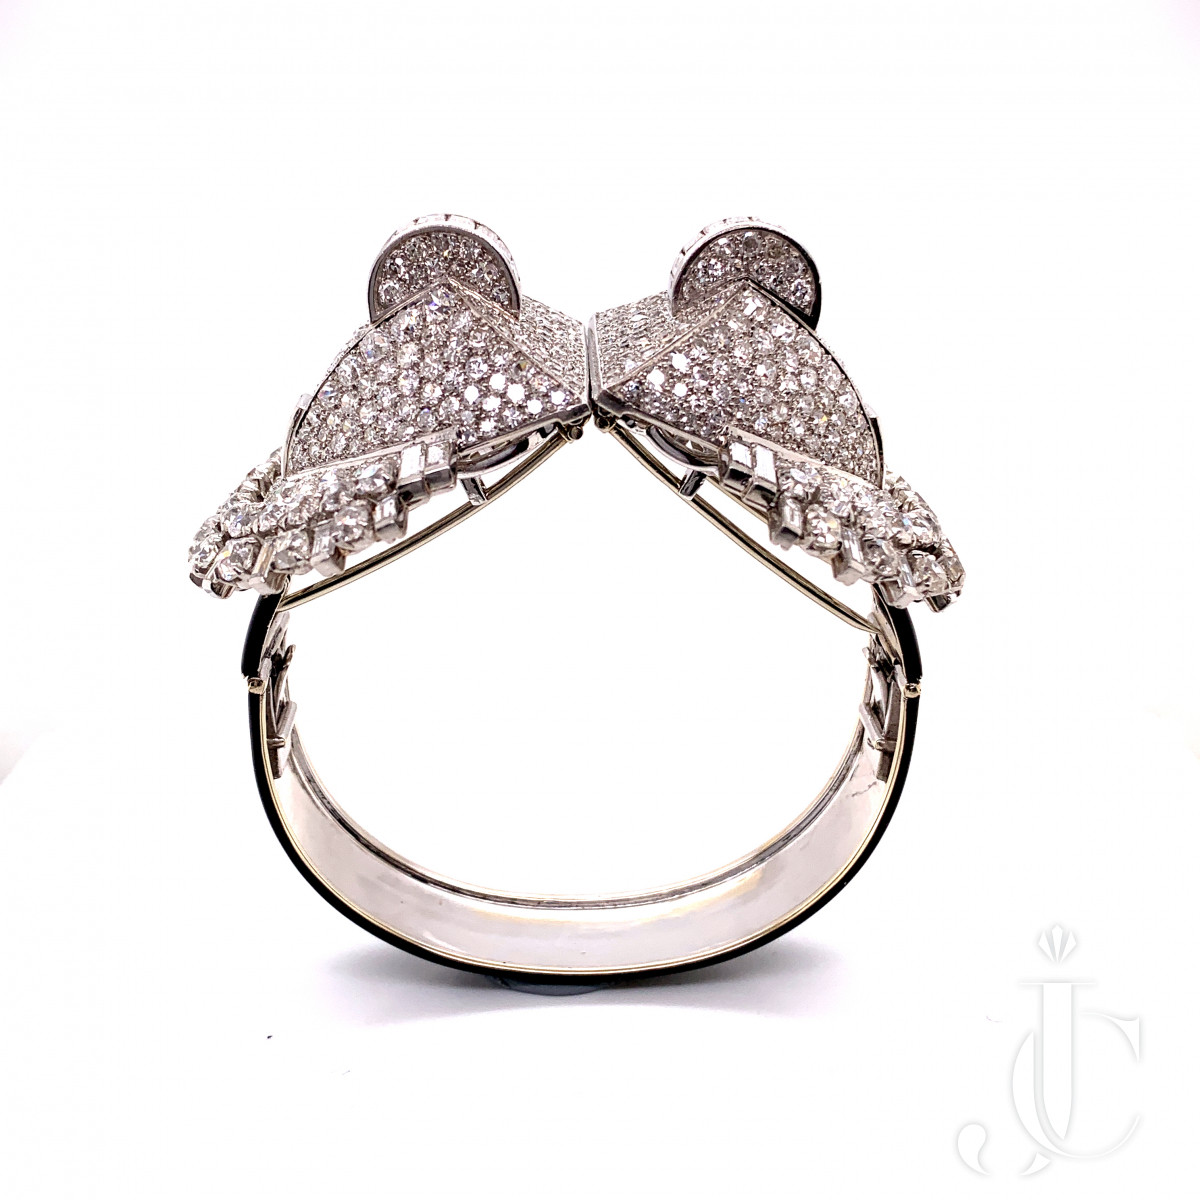 A pair of platinum French clips / bangle with diamond by Mauboussin